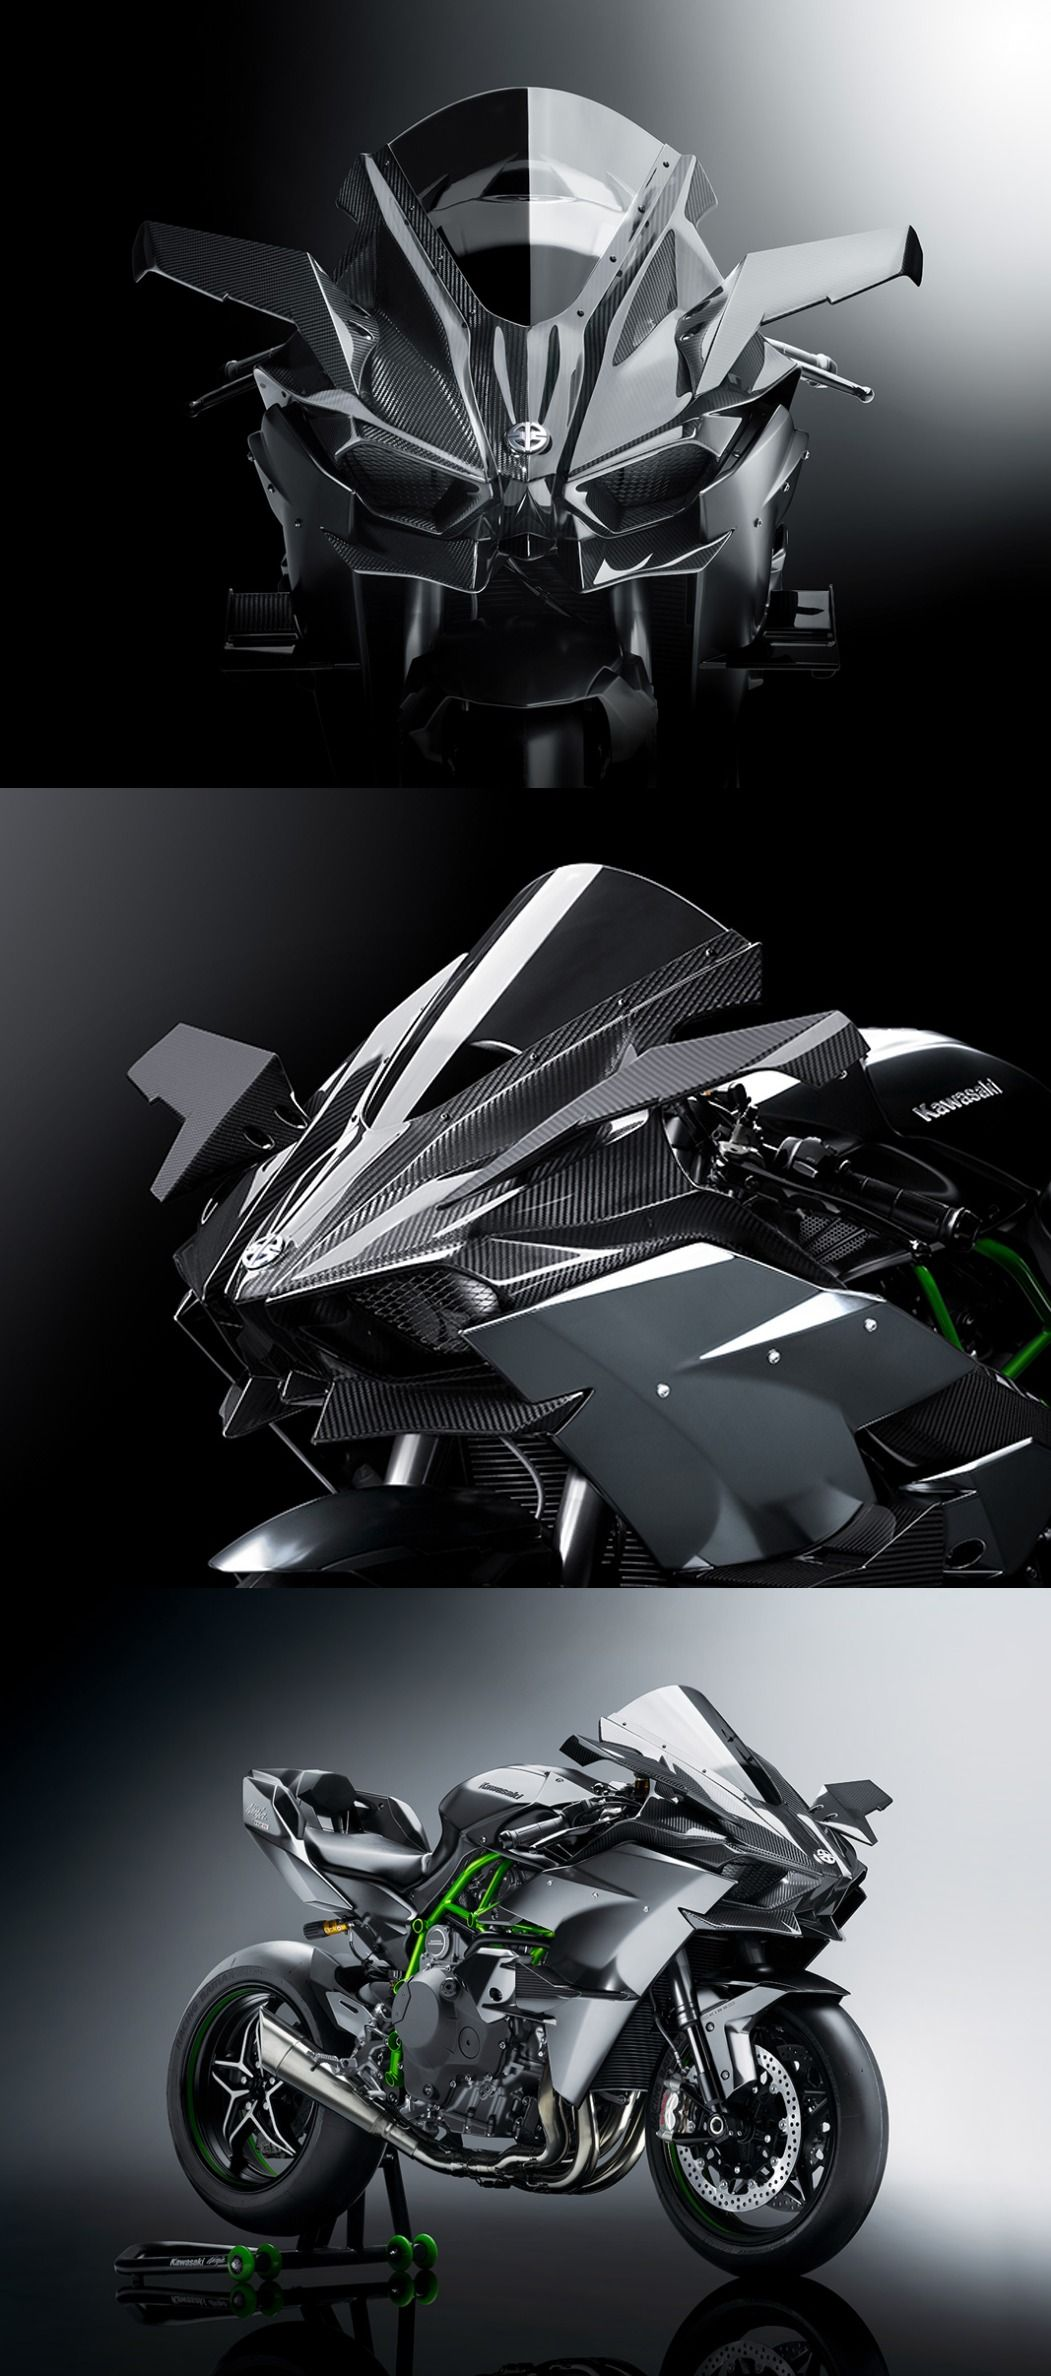 Kawasaki Ninja H2R A Street Version Of The Heavily Designed Supercharged Engined Motorcycle